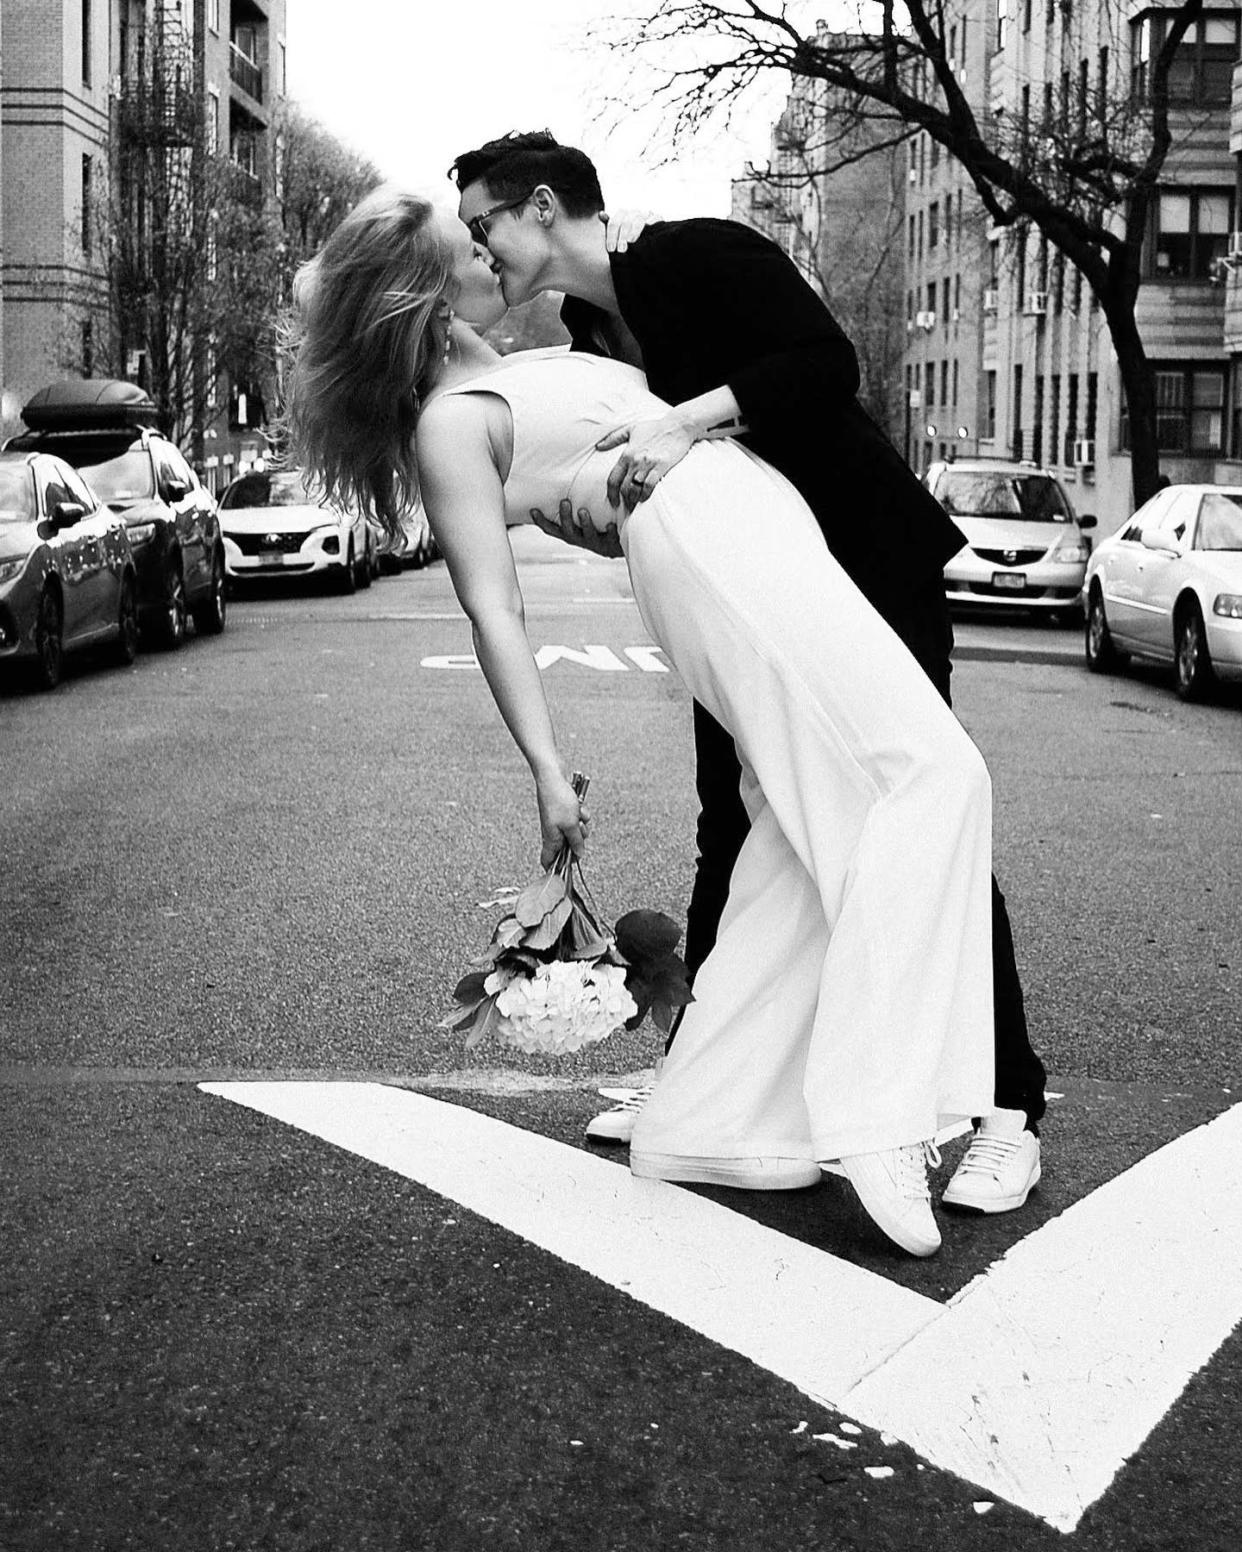 Image: Reilly Jennings and Amanda Wheeler kiss after their wedding in New York. (Katie Kaufman-Gibbons)